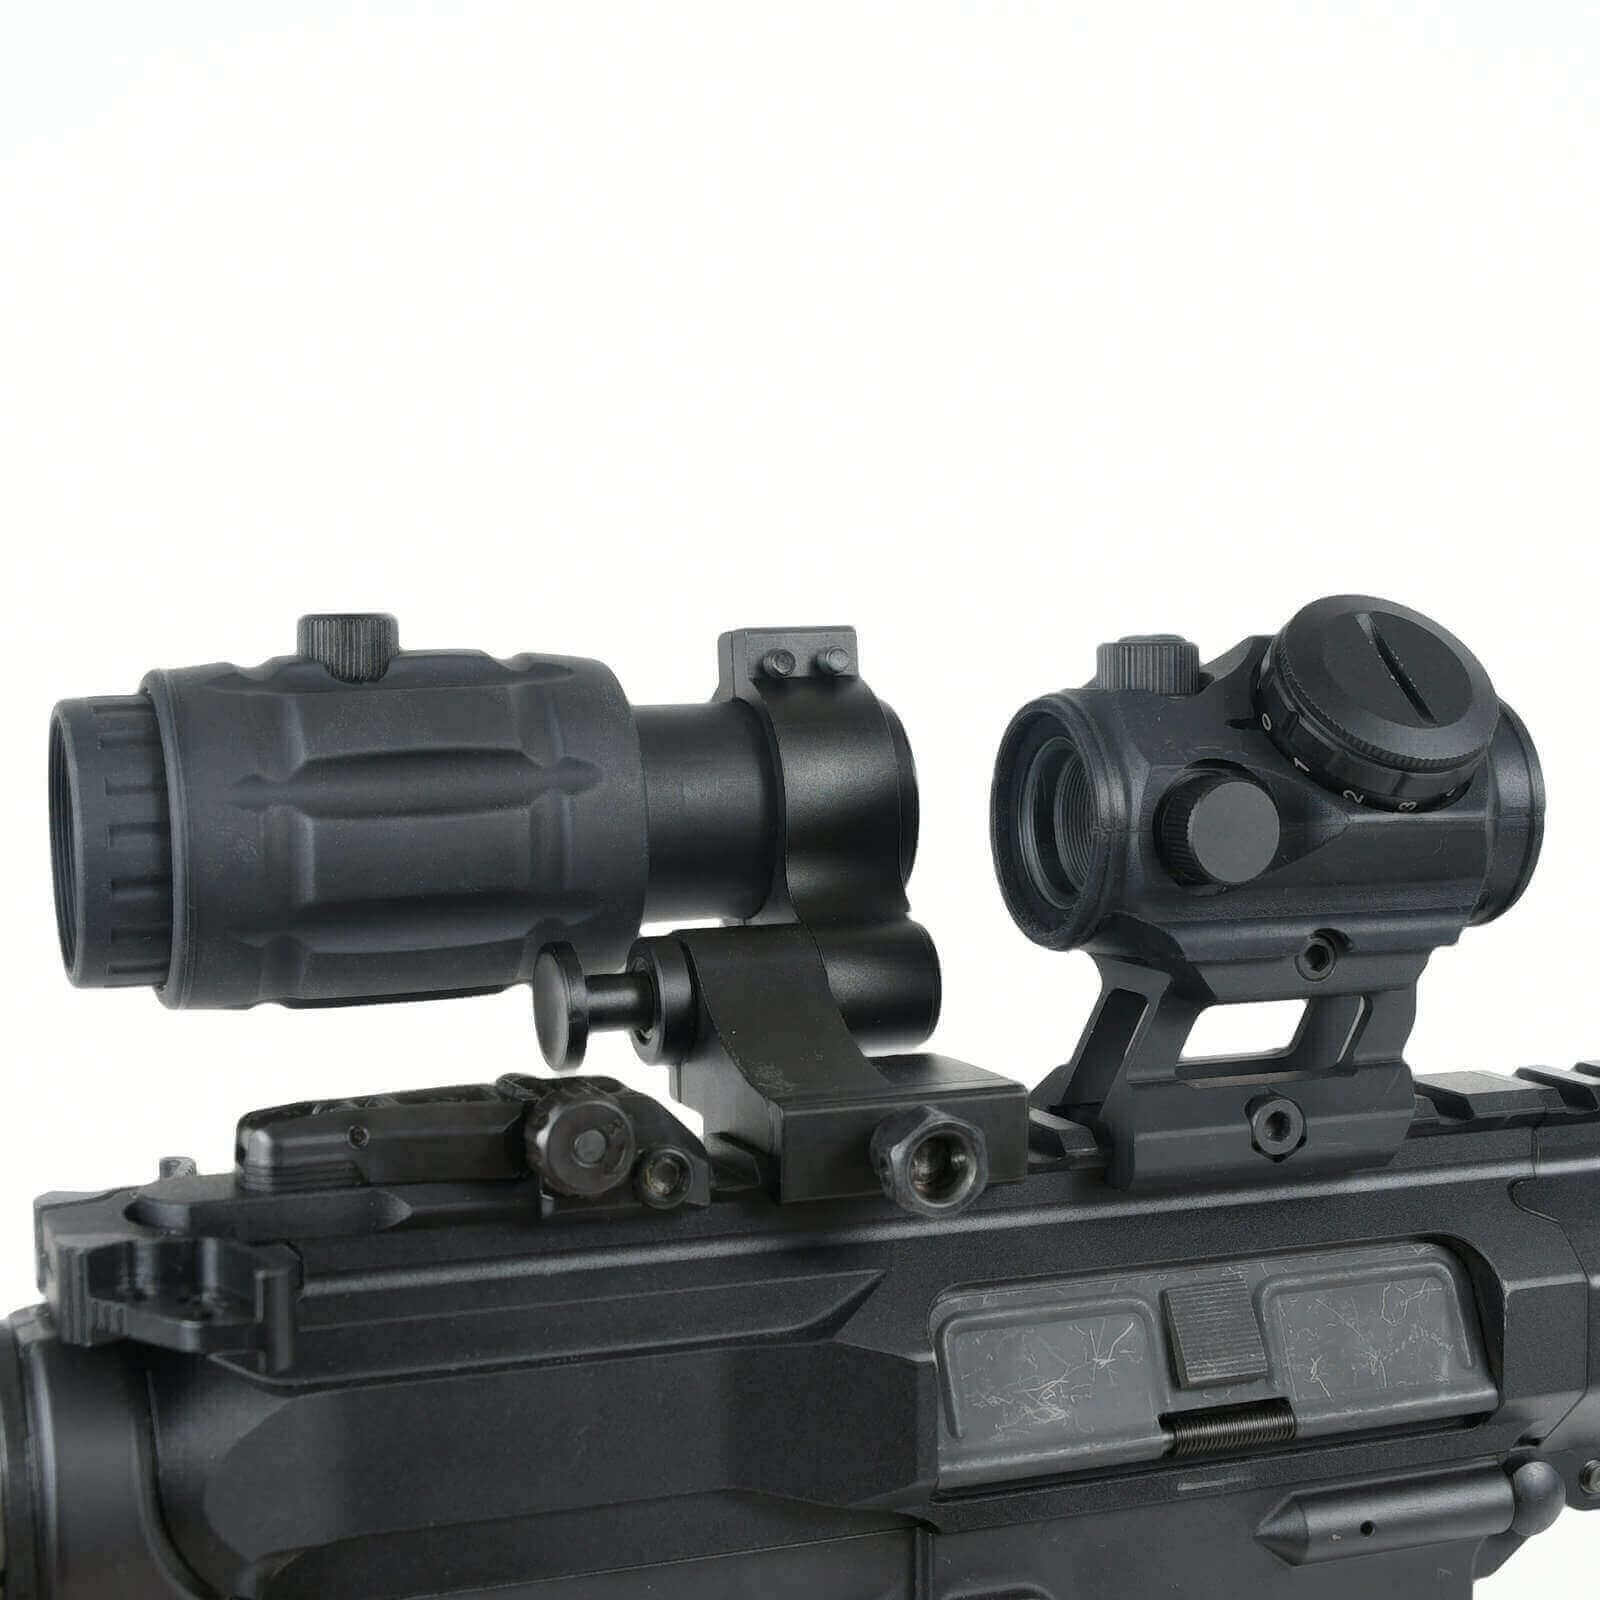 AT3™ Magnified Red Dot Kit